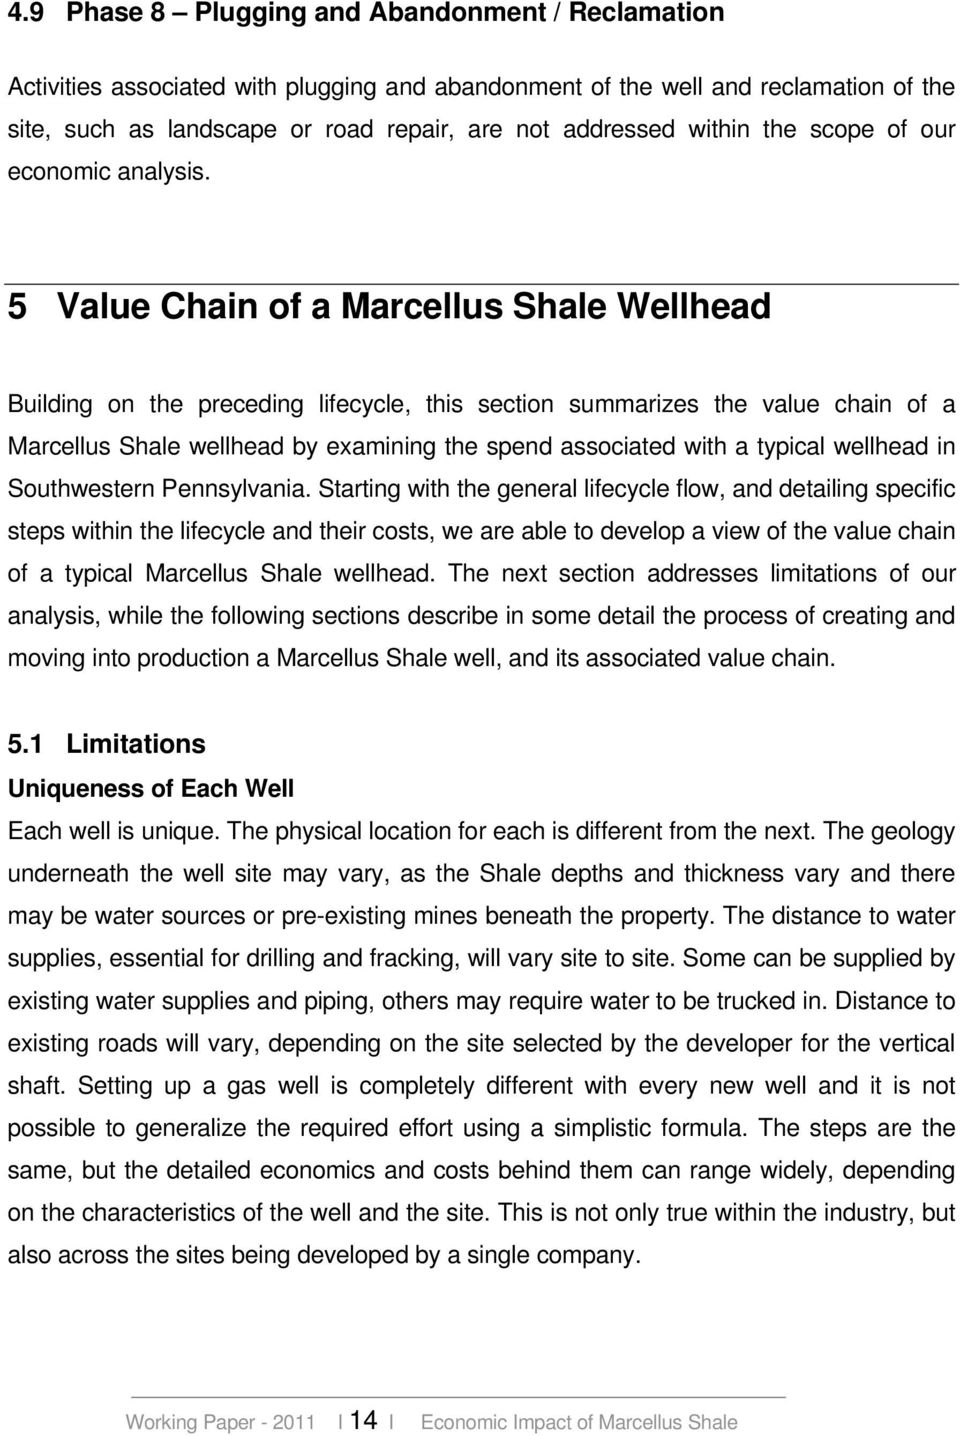 5 Value Chain of a Marcellus Shale Wellhead Building on the preceding lifecycle, this section summarizes the value chain of a Marcellus Shale wellhead by examining the spend associated with a typical